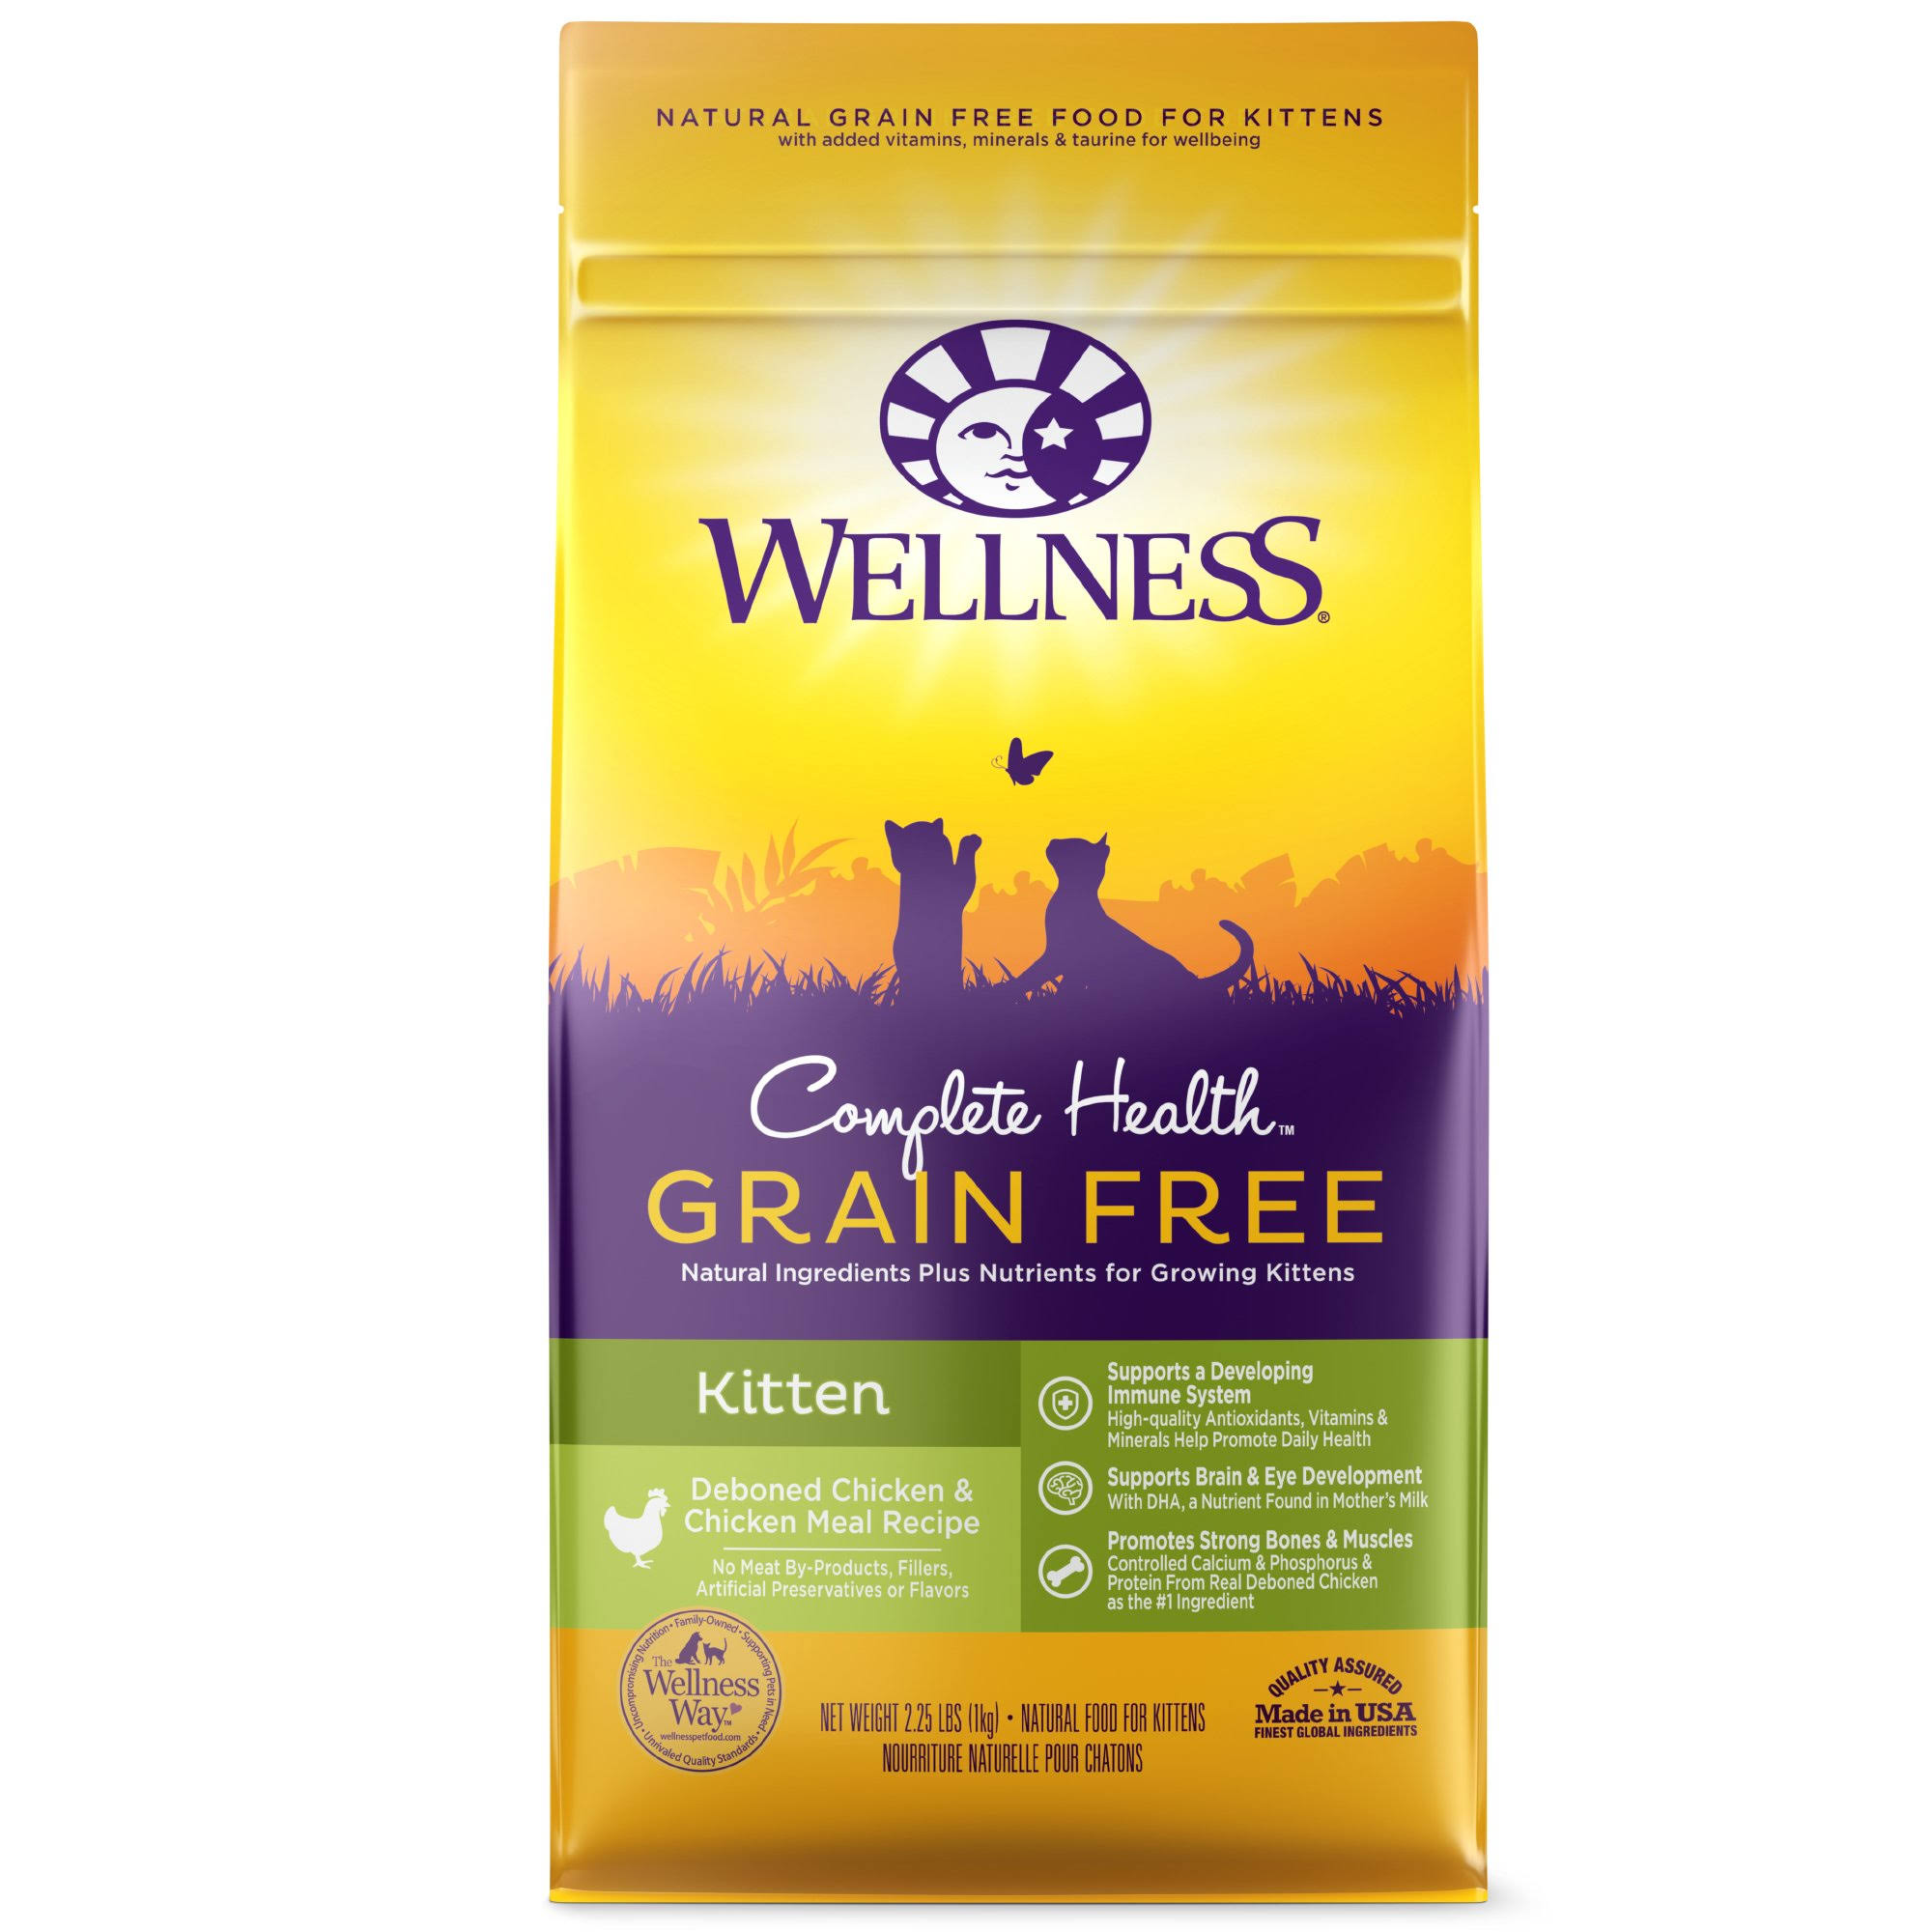 Wellness Grain Free Kitten Food - Chicken, 2lb